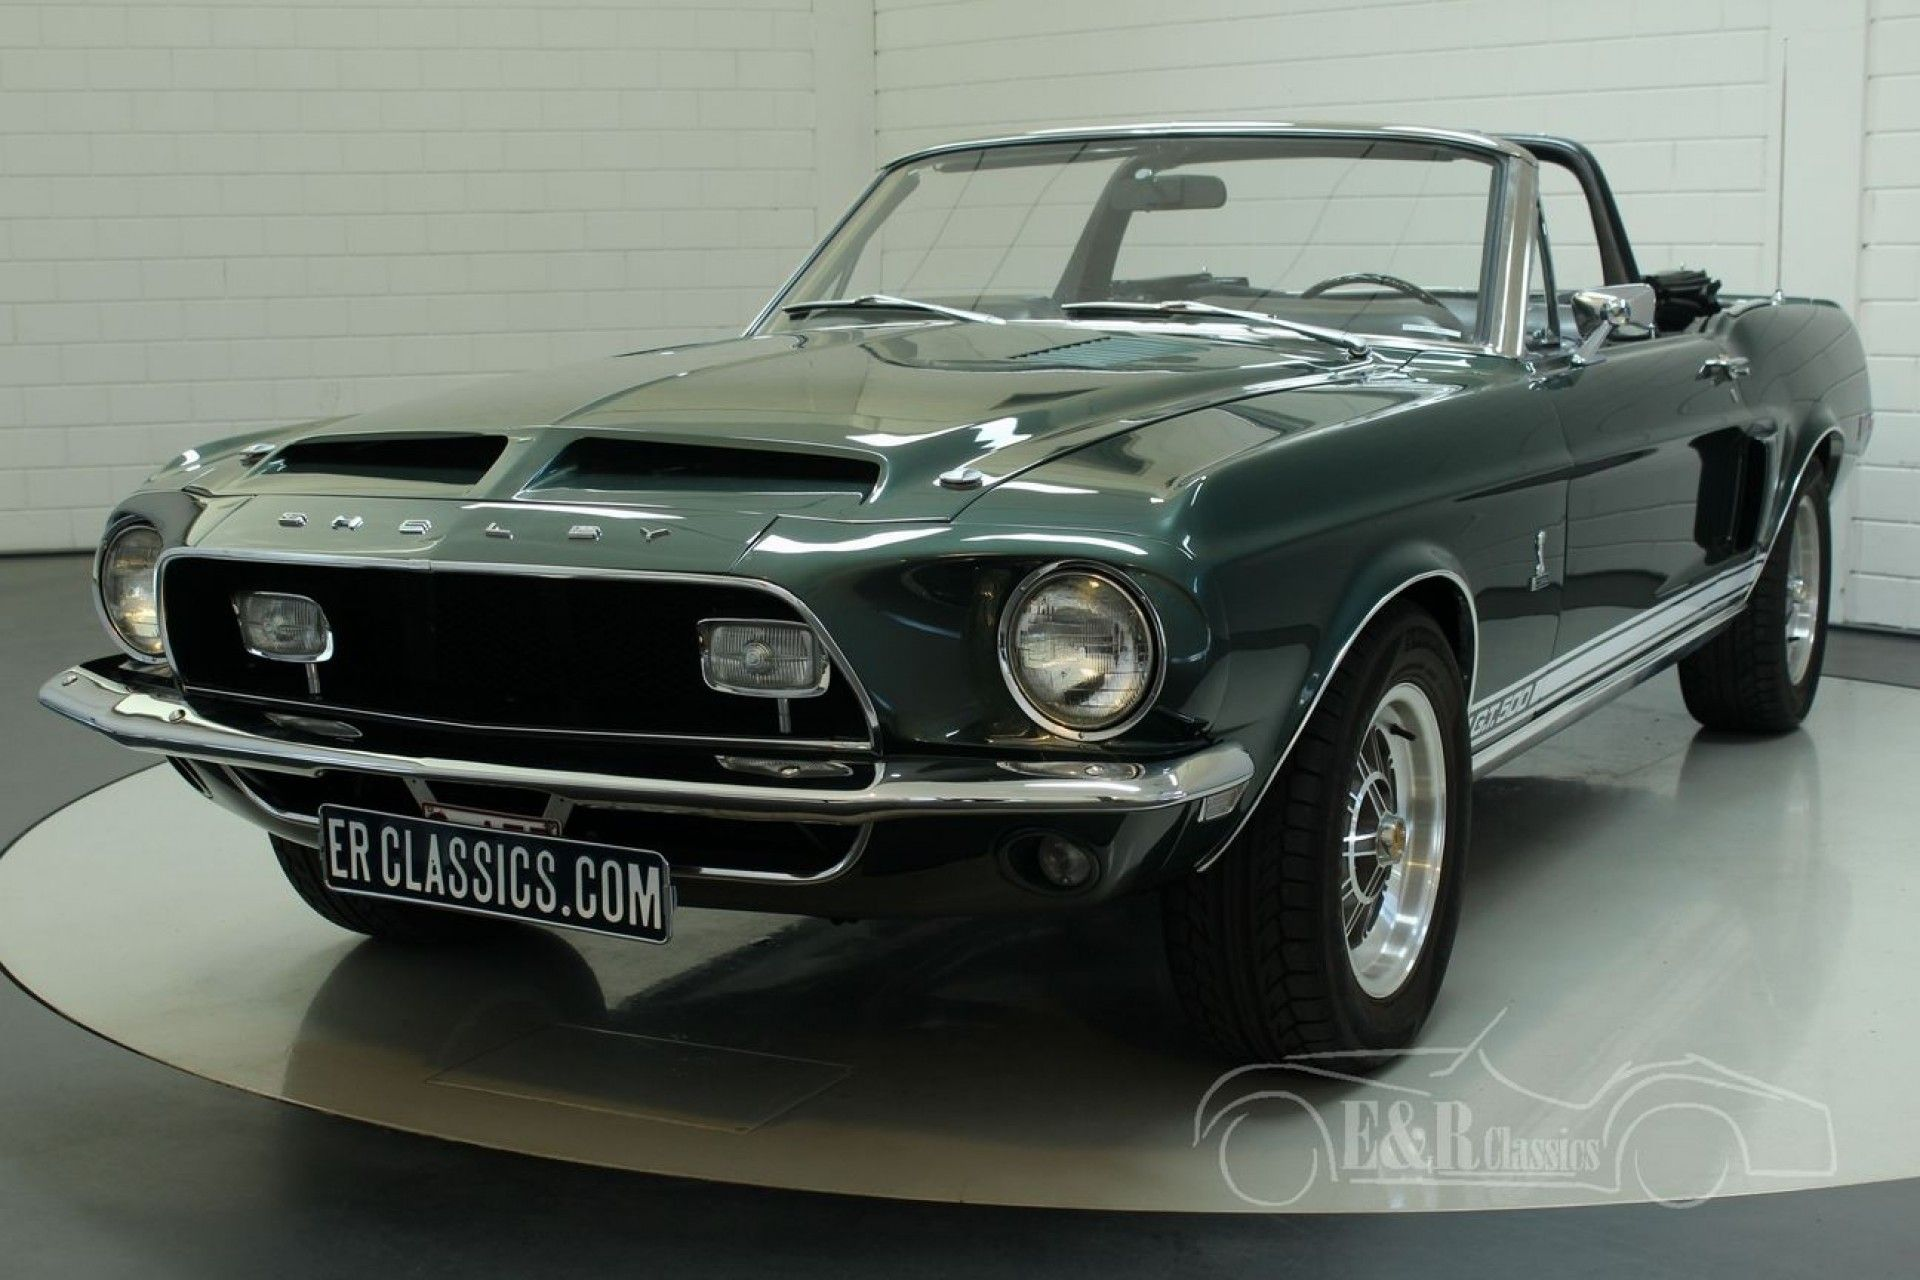 Ford Shelby Gt500 1968 Cabriolet For Sale At Erclassics Mustang Shelby Ford Shelby Ford Mustang Cobra